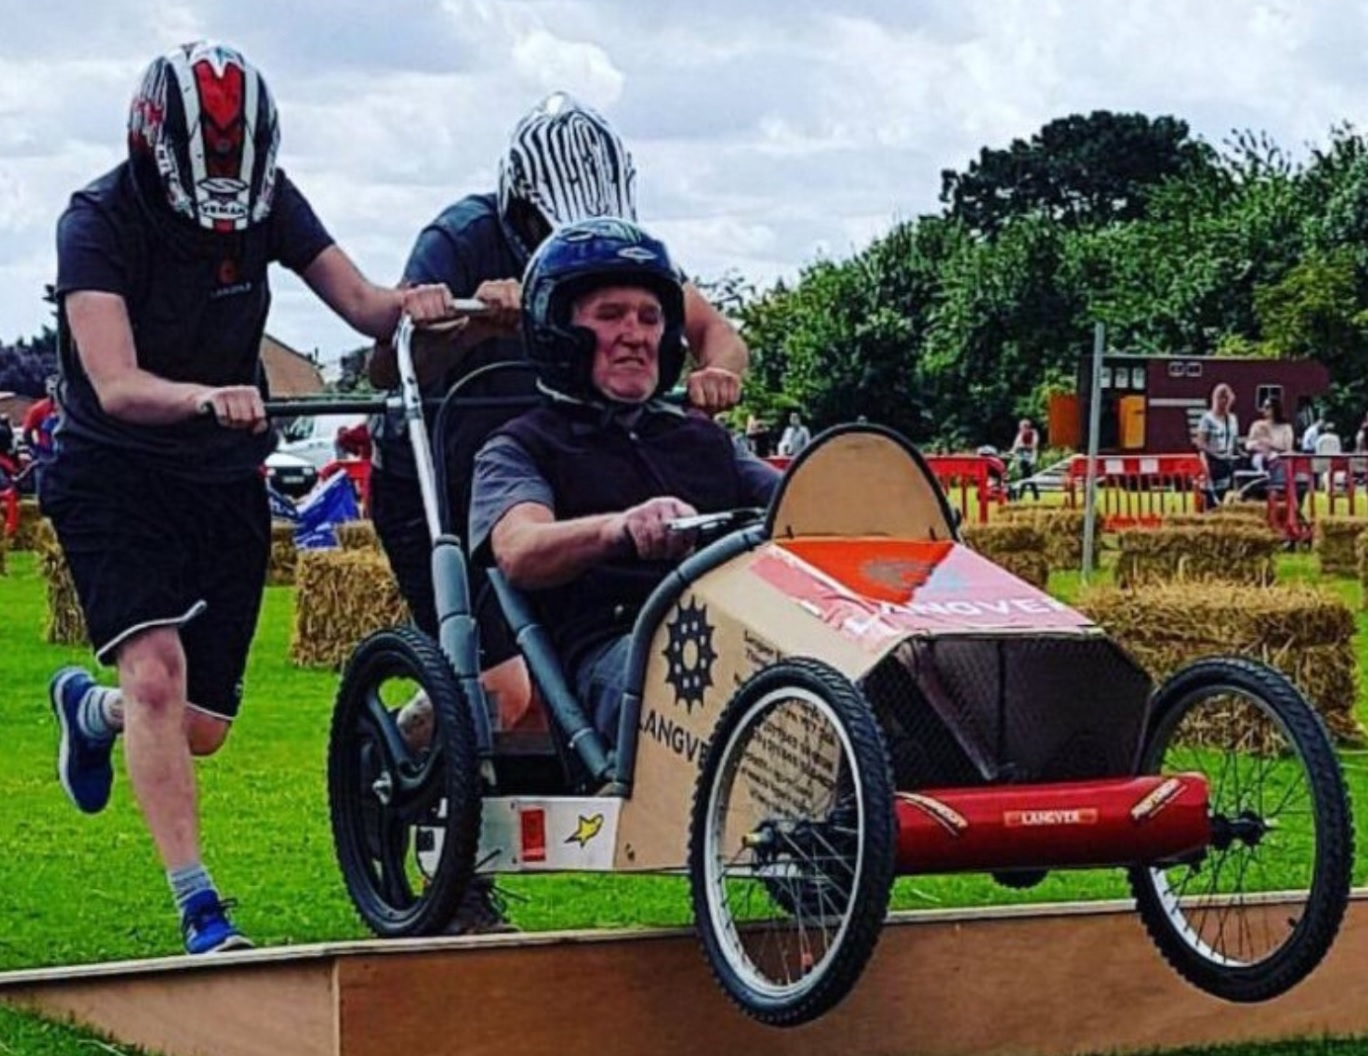 A team from Langver competes in the soapbox derby at Thirsk and Sowerby Festival